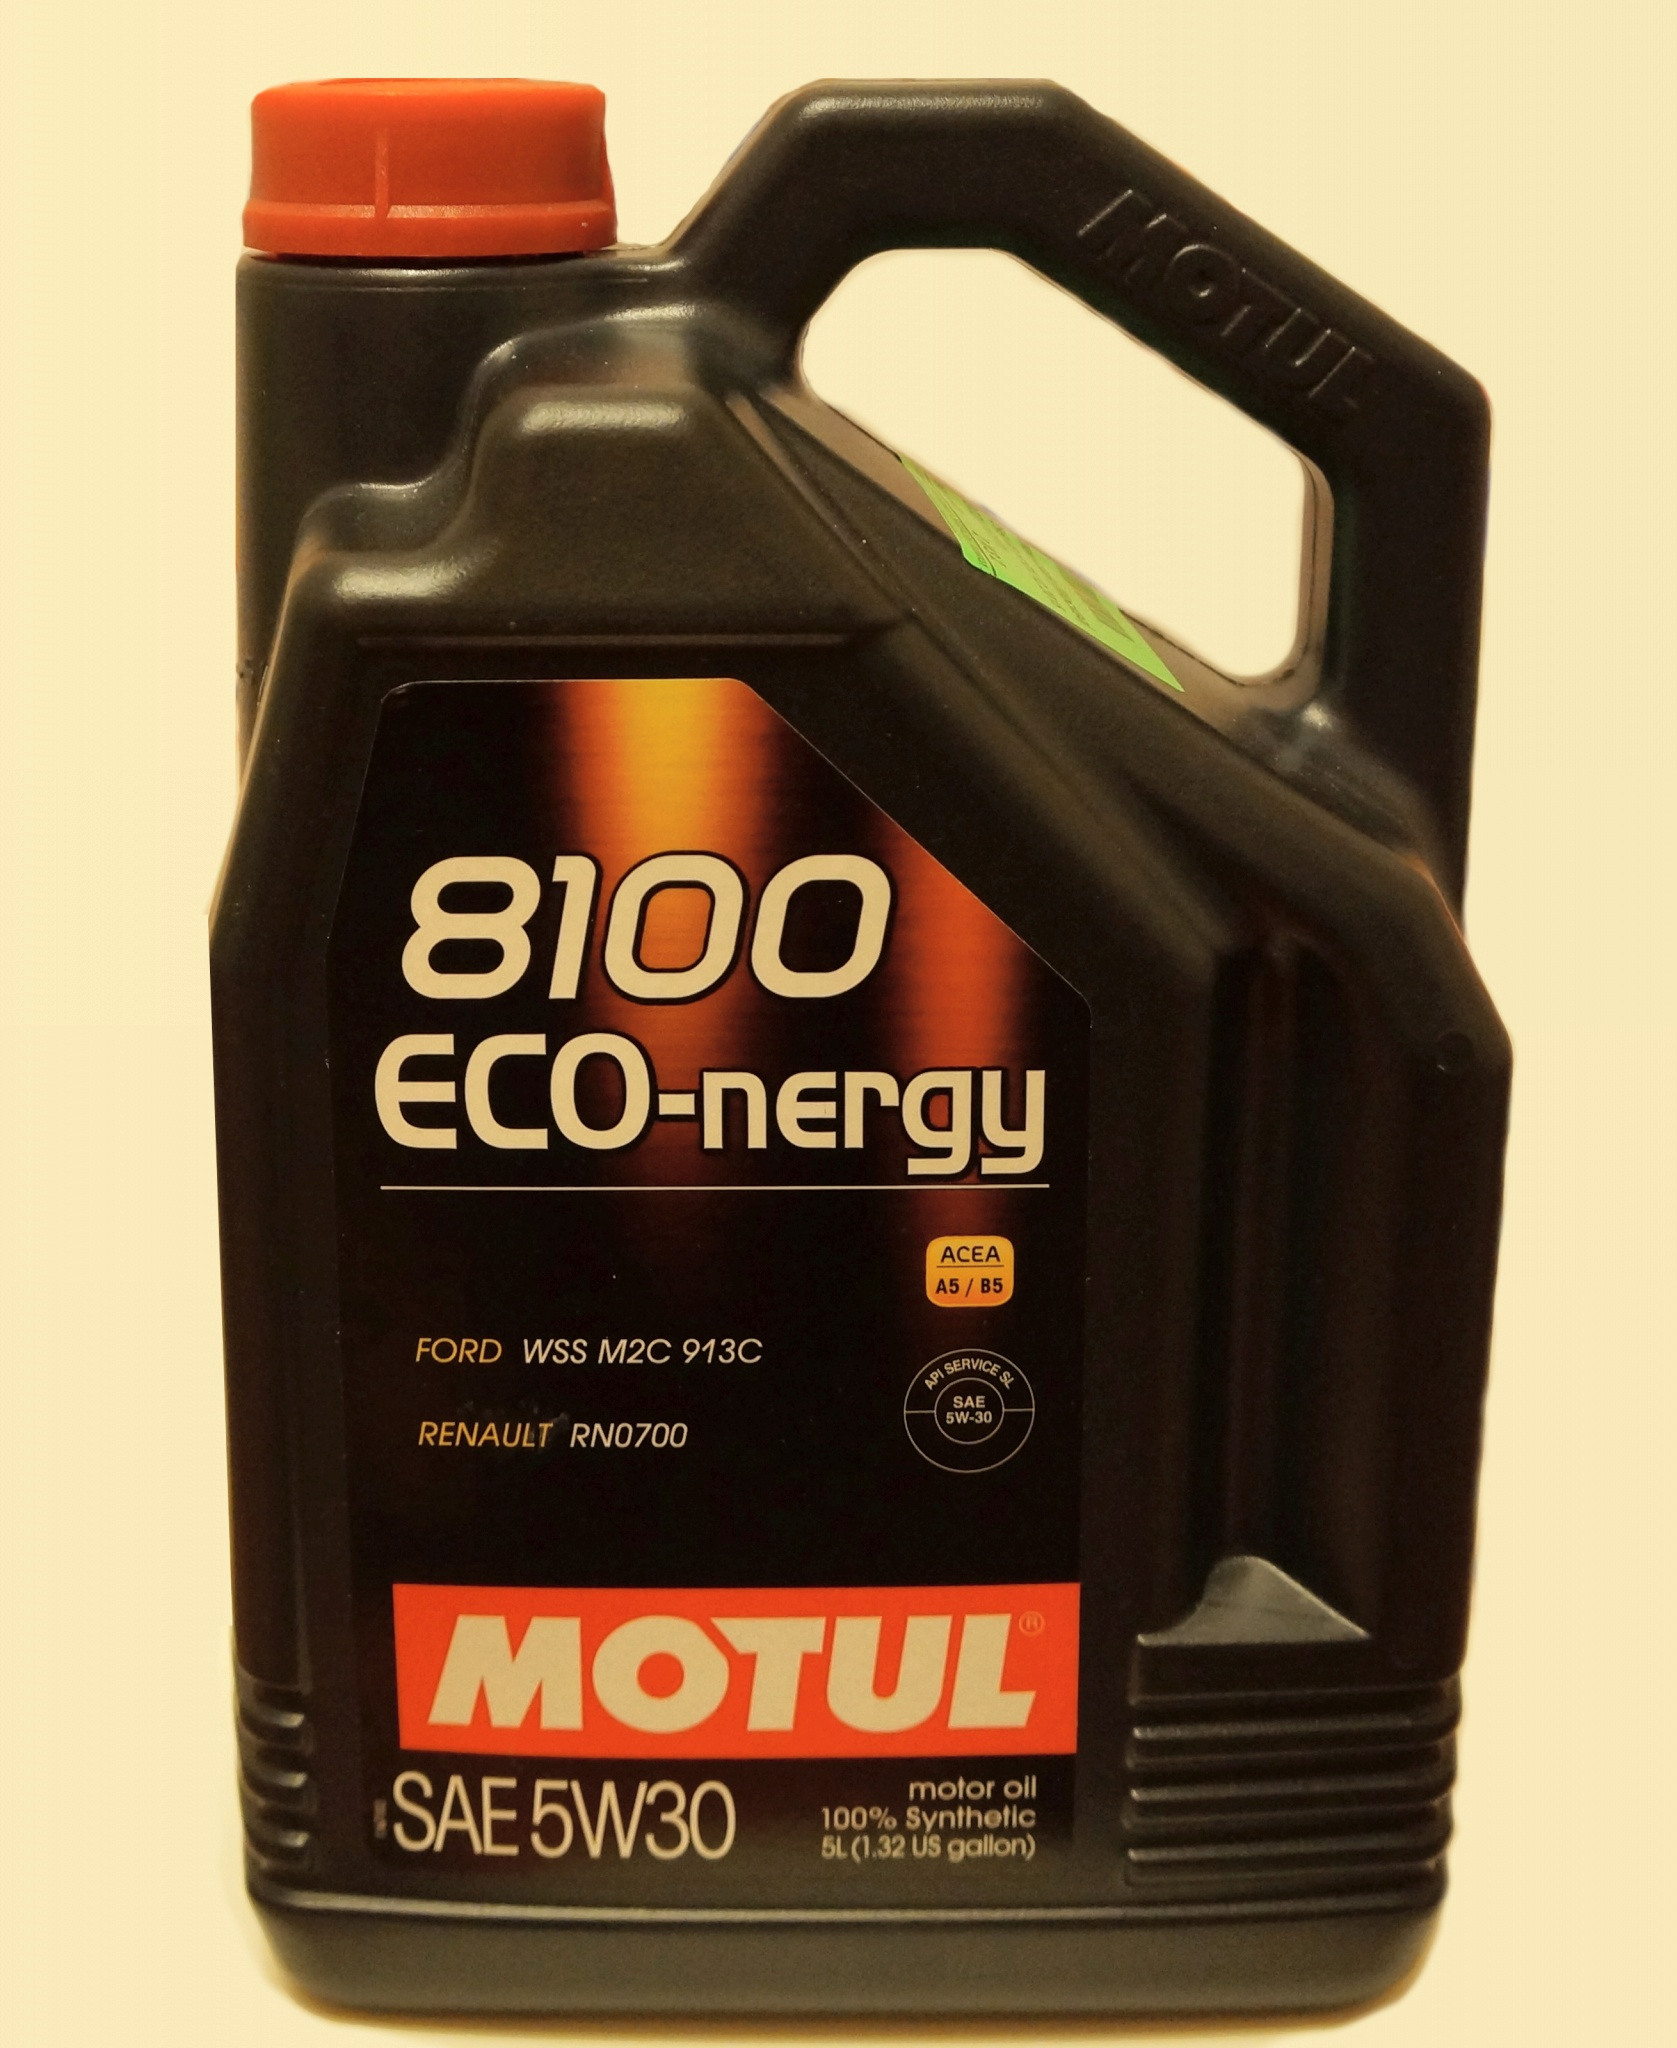 motul eco-energy 5w30 ford